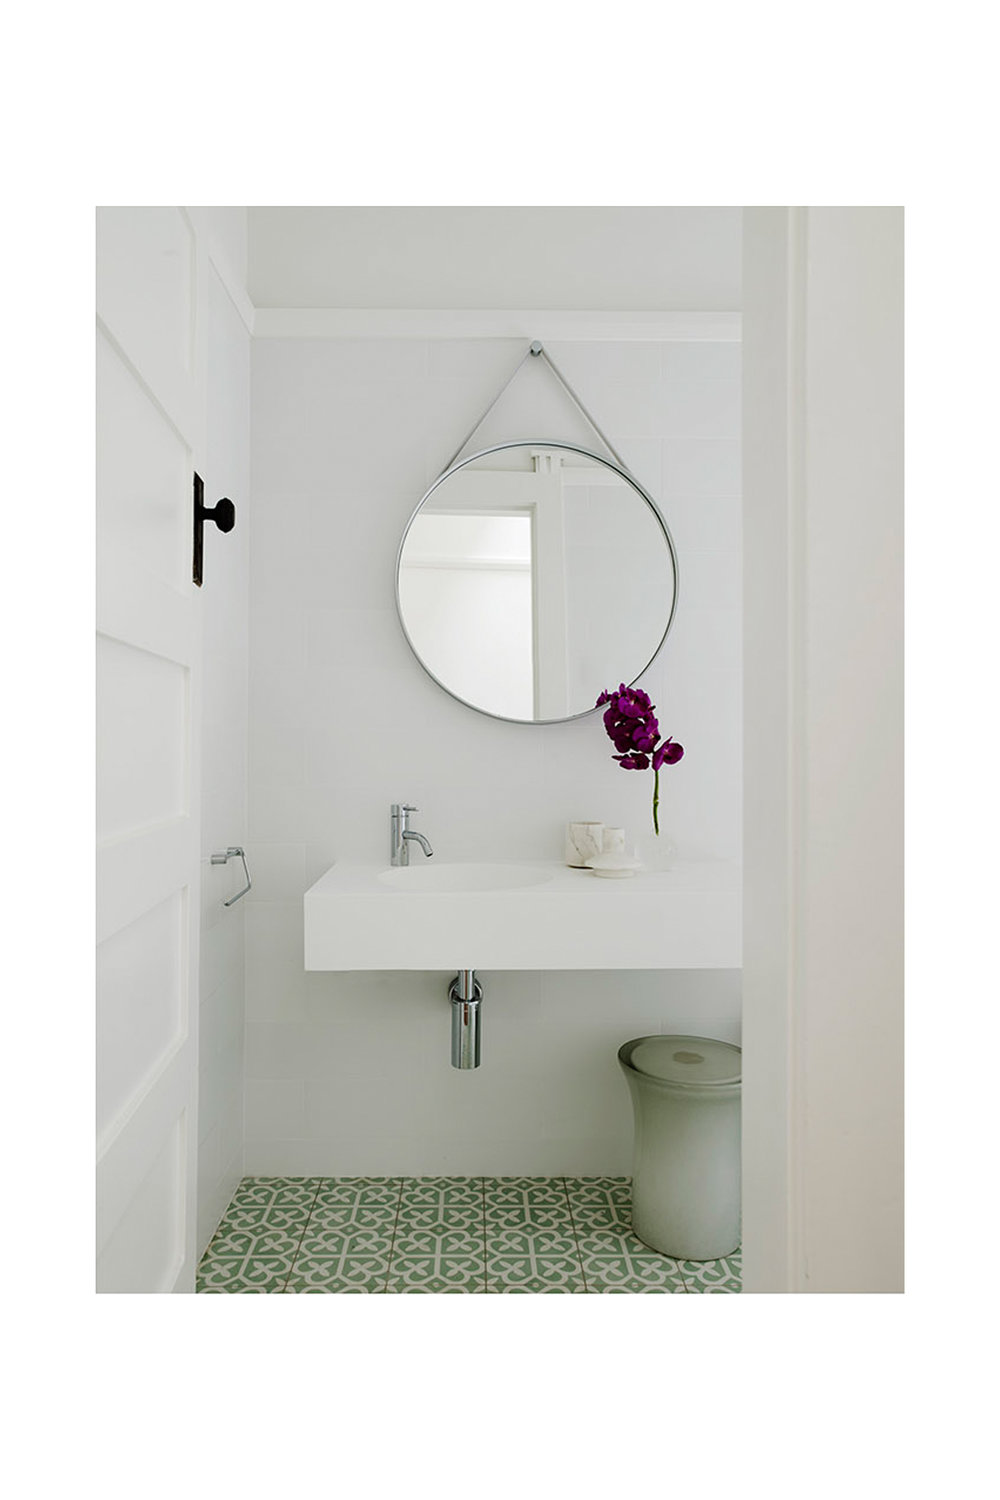 Website | File | Terence Yong Architecture | Coogee House : 2 in 1 | Alteration | A contemporary and elegant bathroom design with a touch of retro charm | 01.jpg